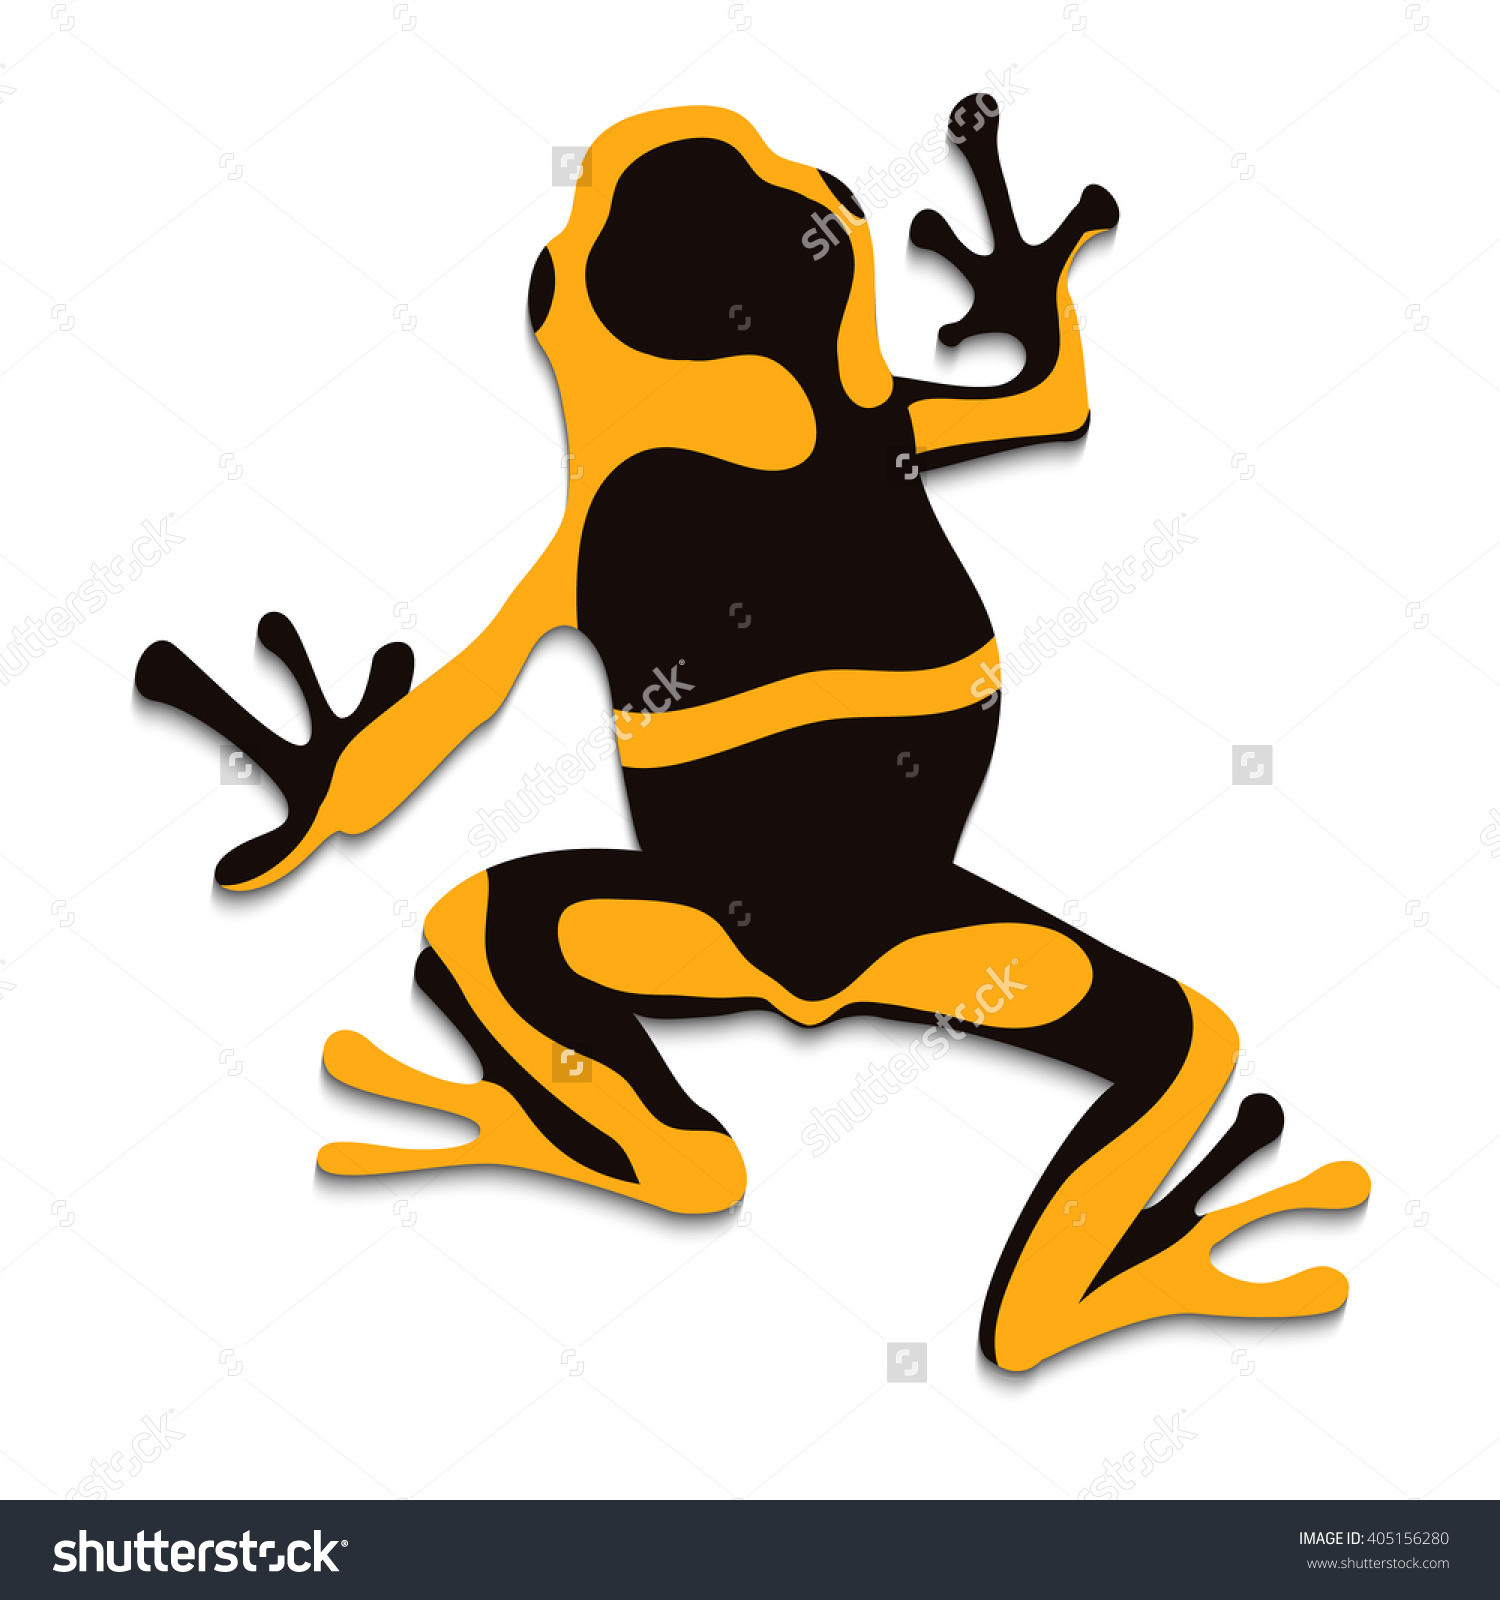 Poison Frog Flat Design Vector Illustration Stock Vector 405156280.